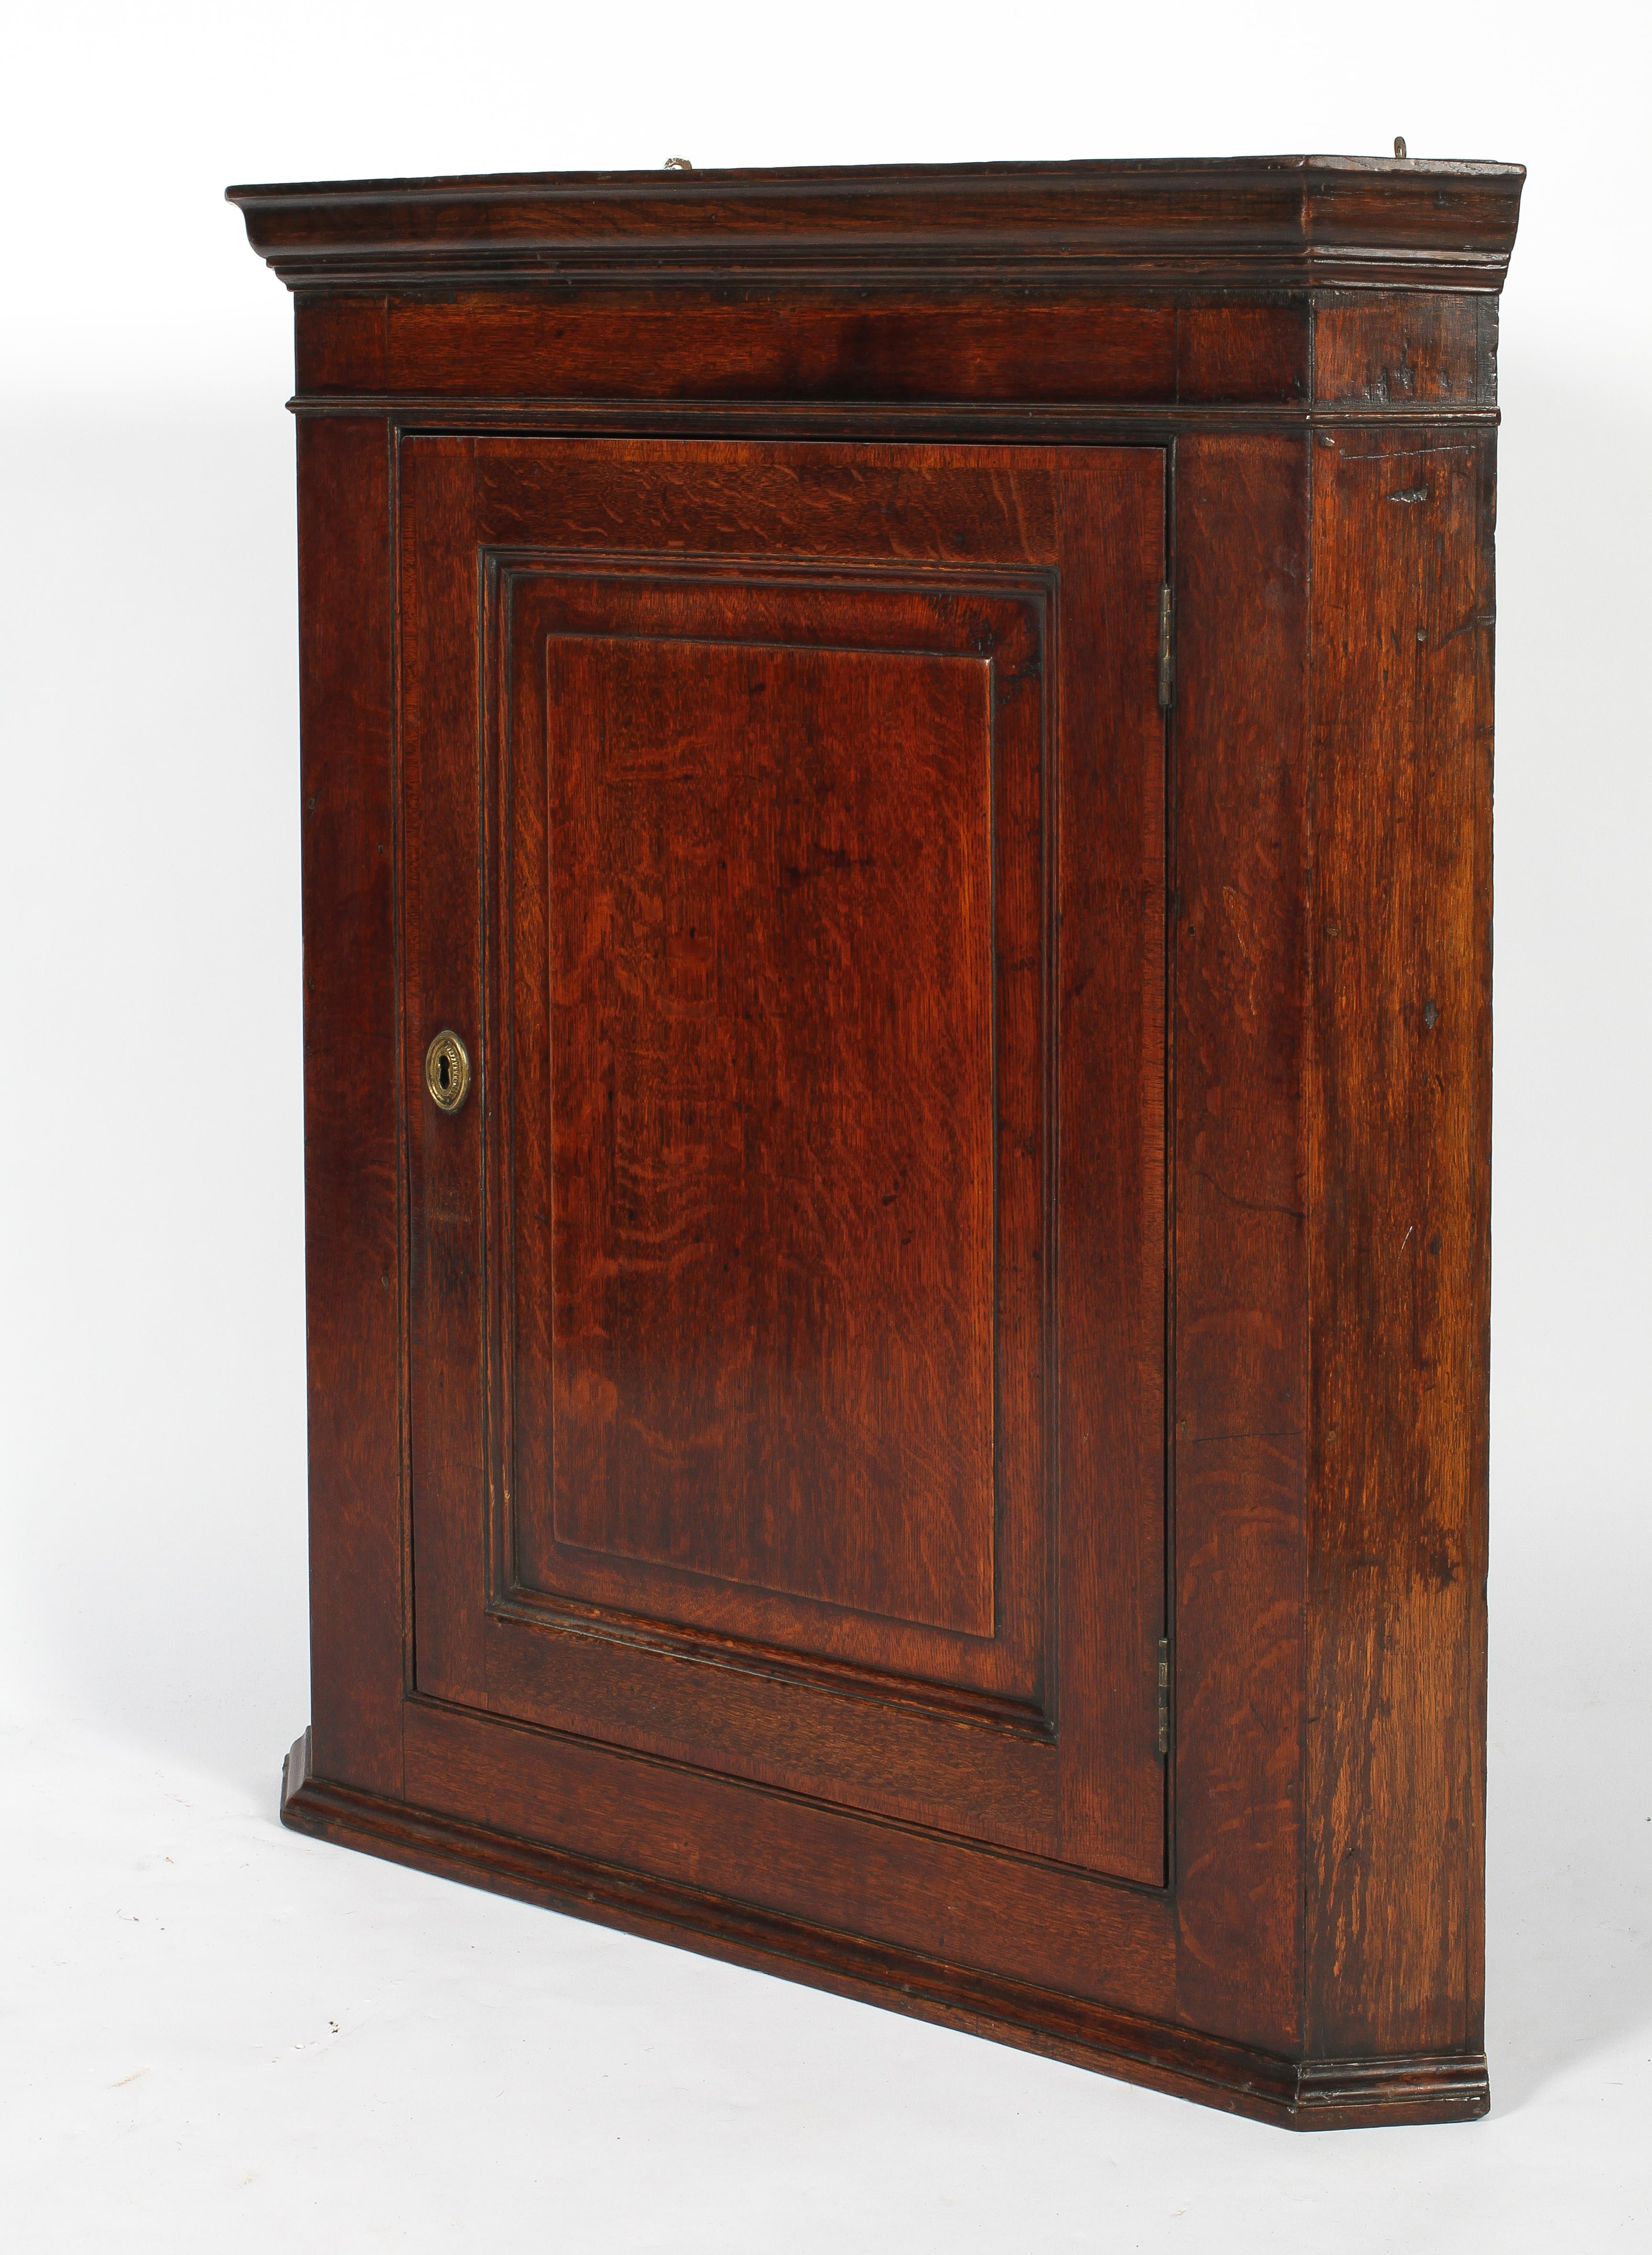 An 18th century oak corner cupboard, with moulded cornice and panelled door,